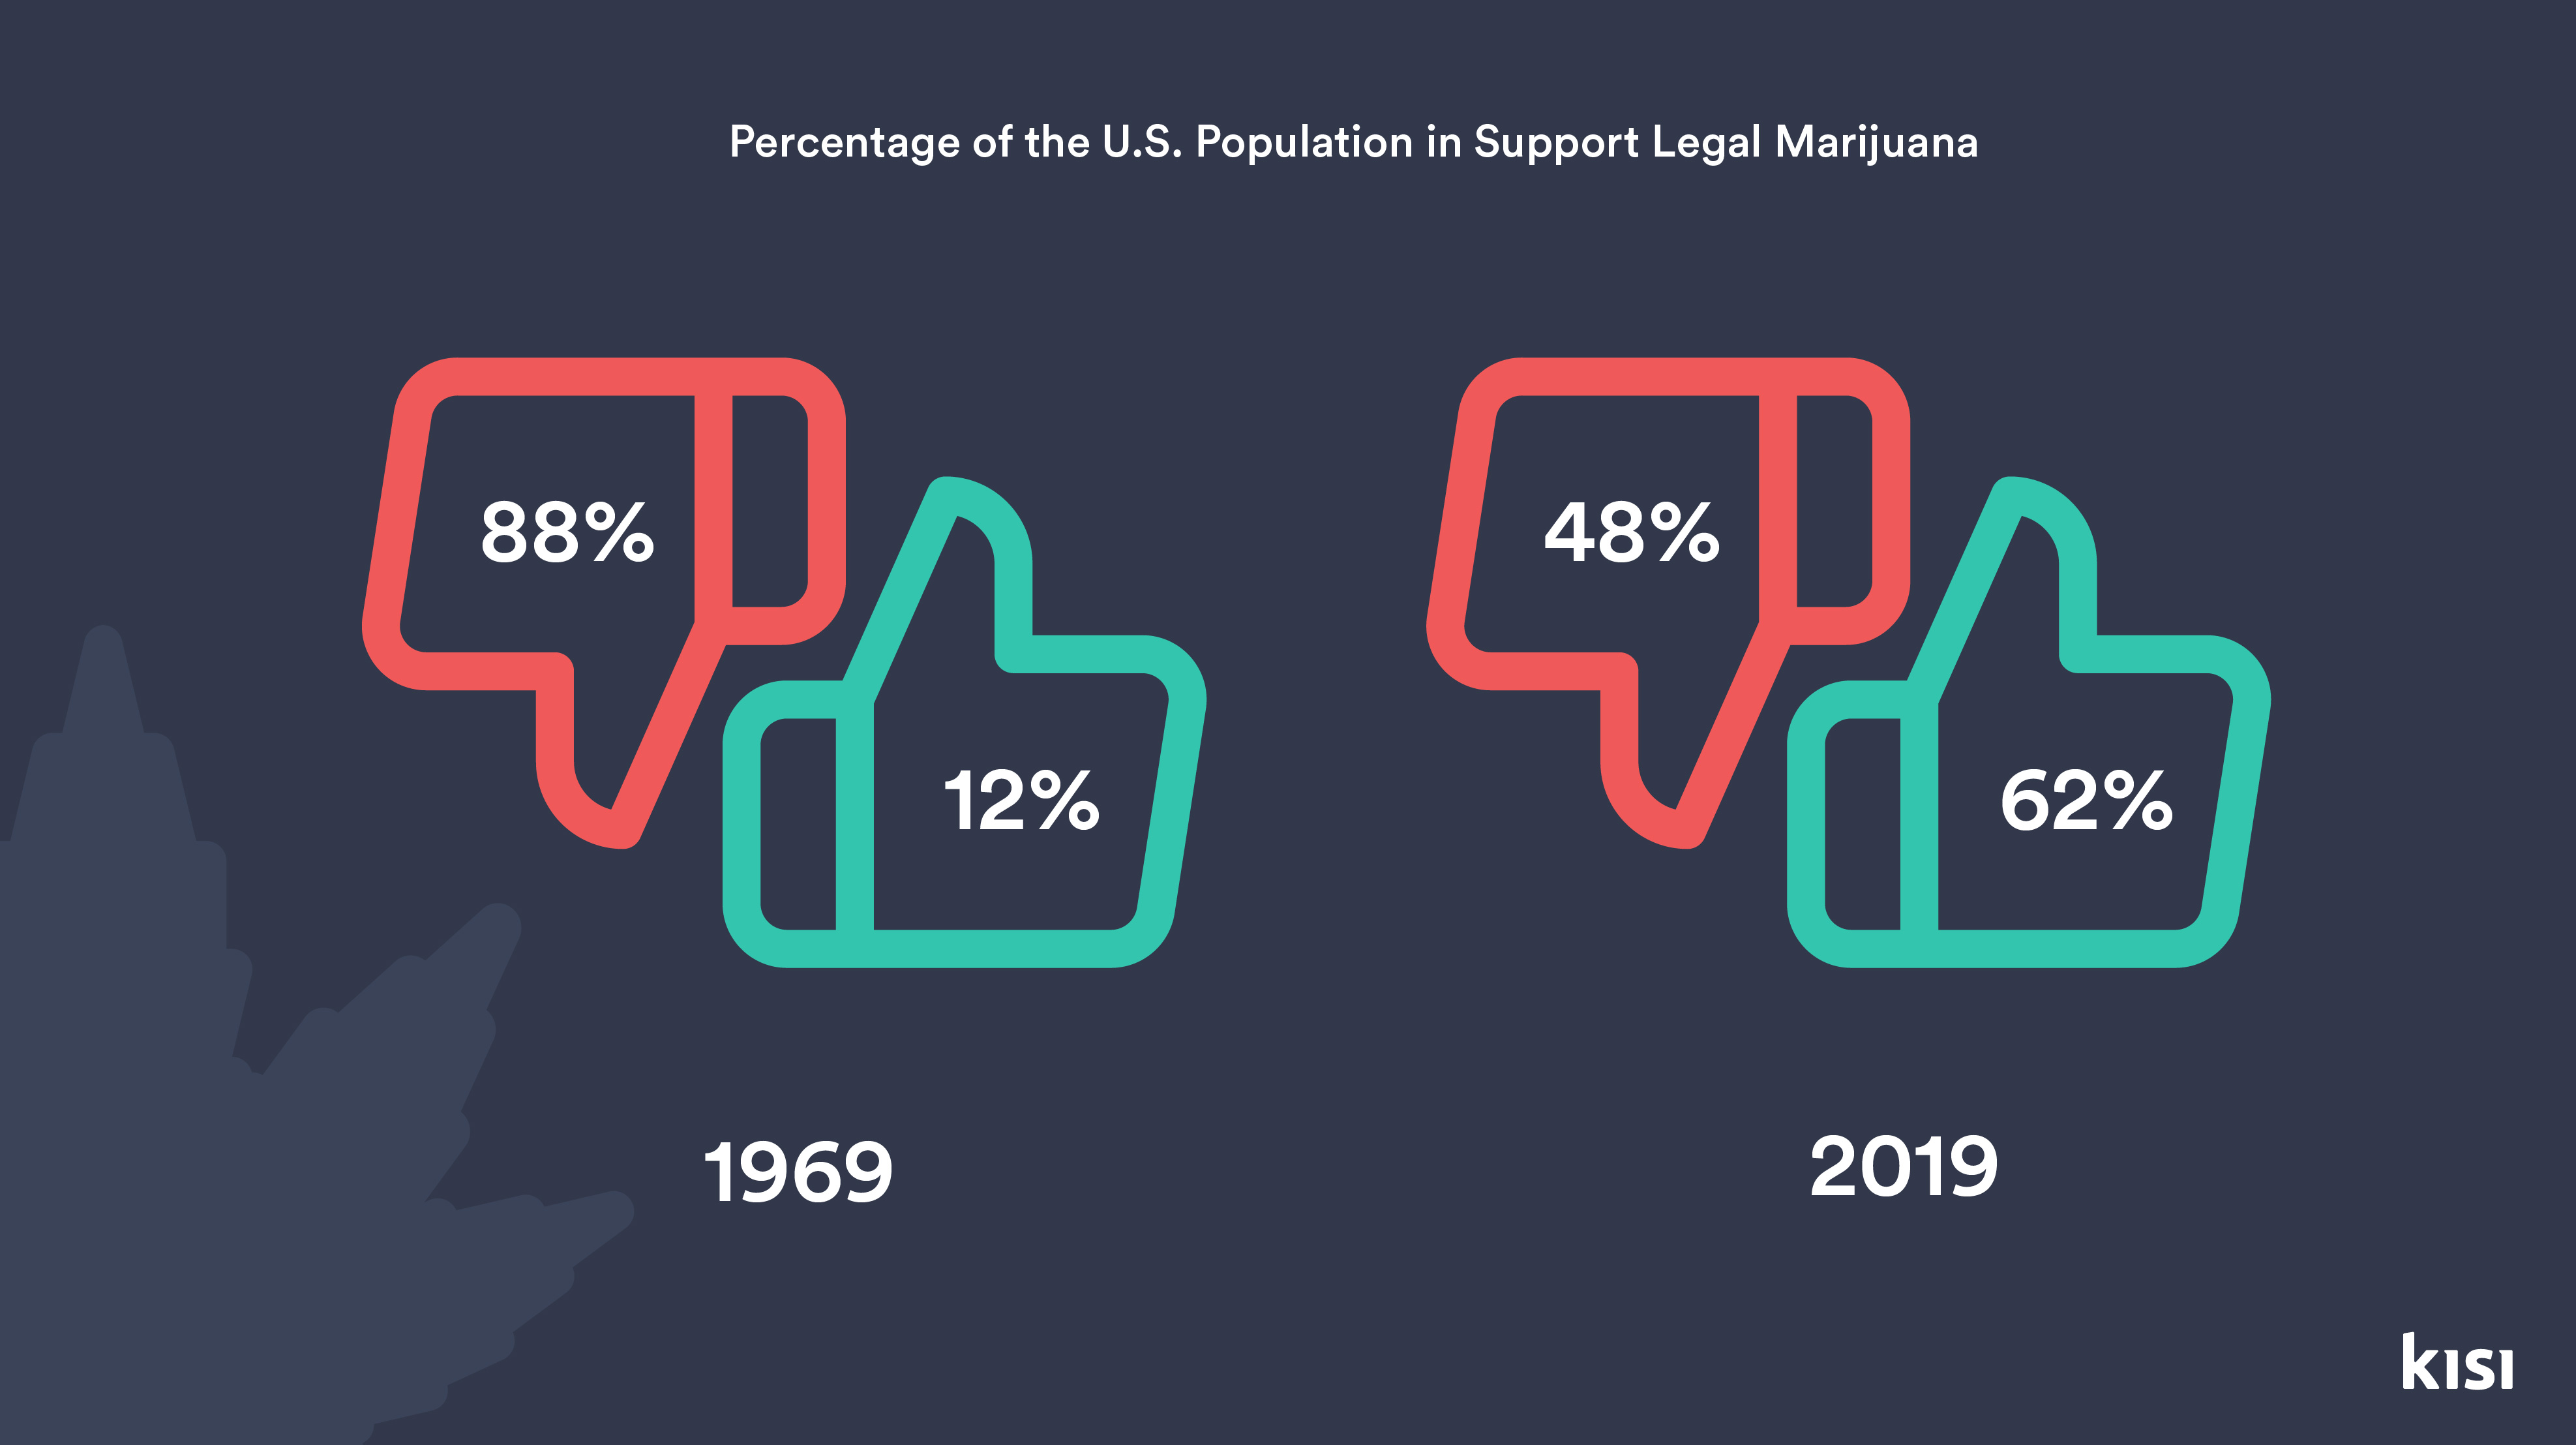 percentage of the US populaton in support of legal mariuana from 1969 to present